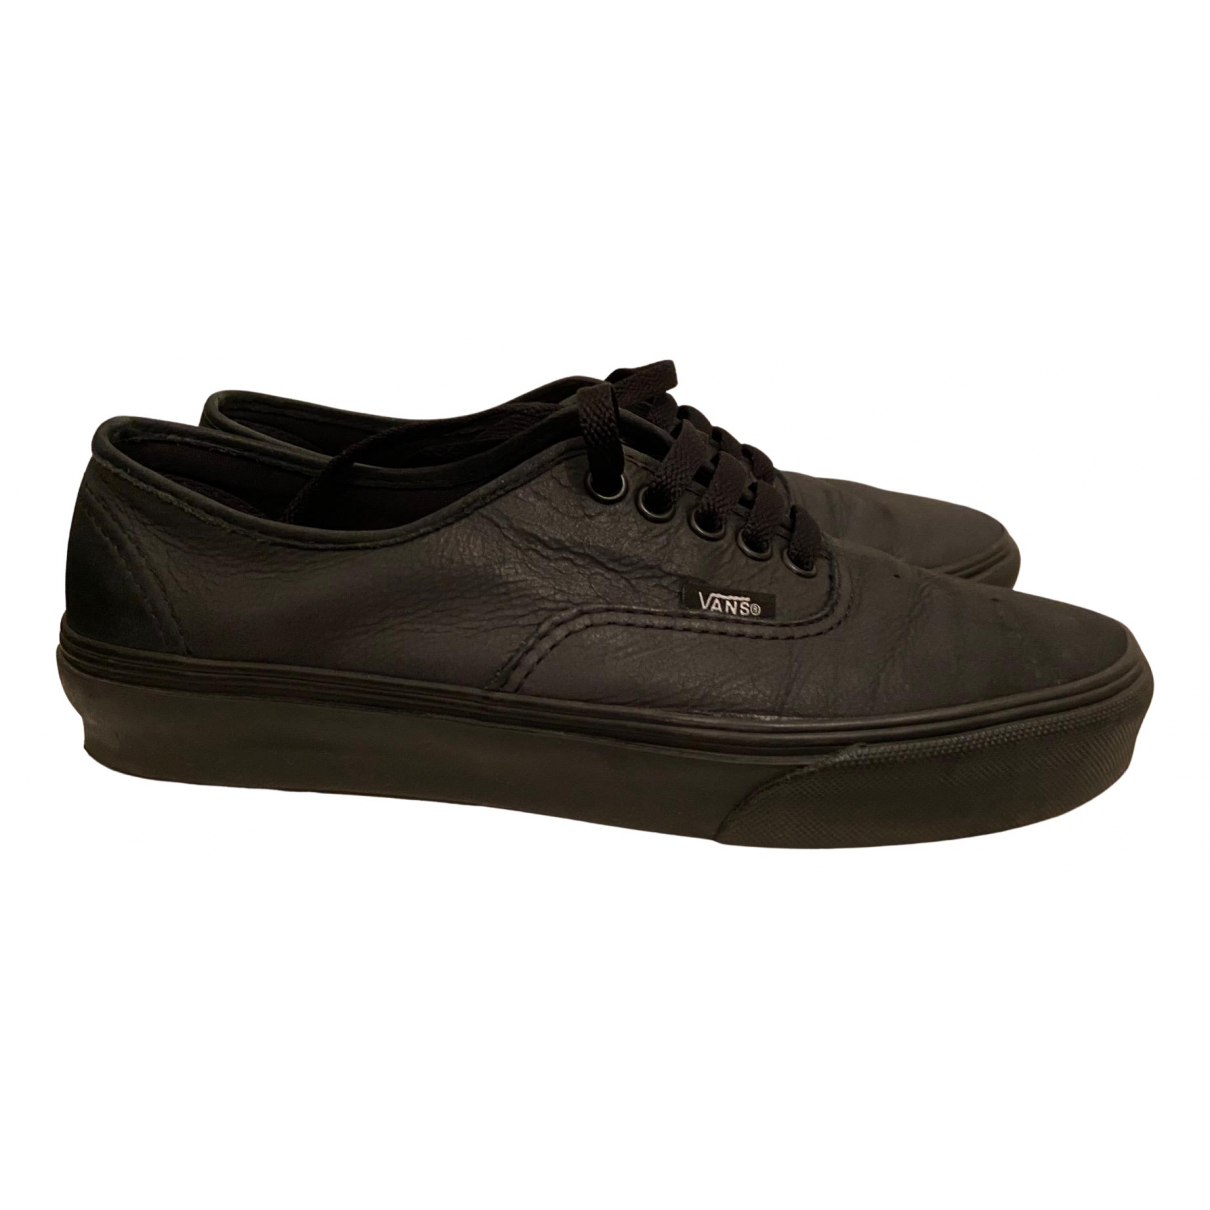 Vans N Black Leather Trainers for Women 39 EU